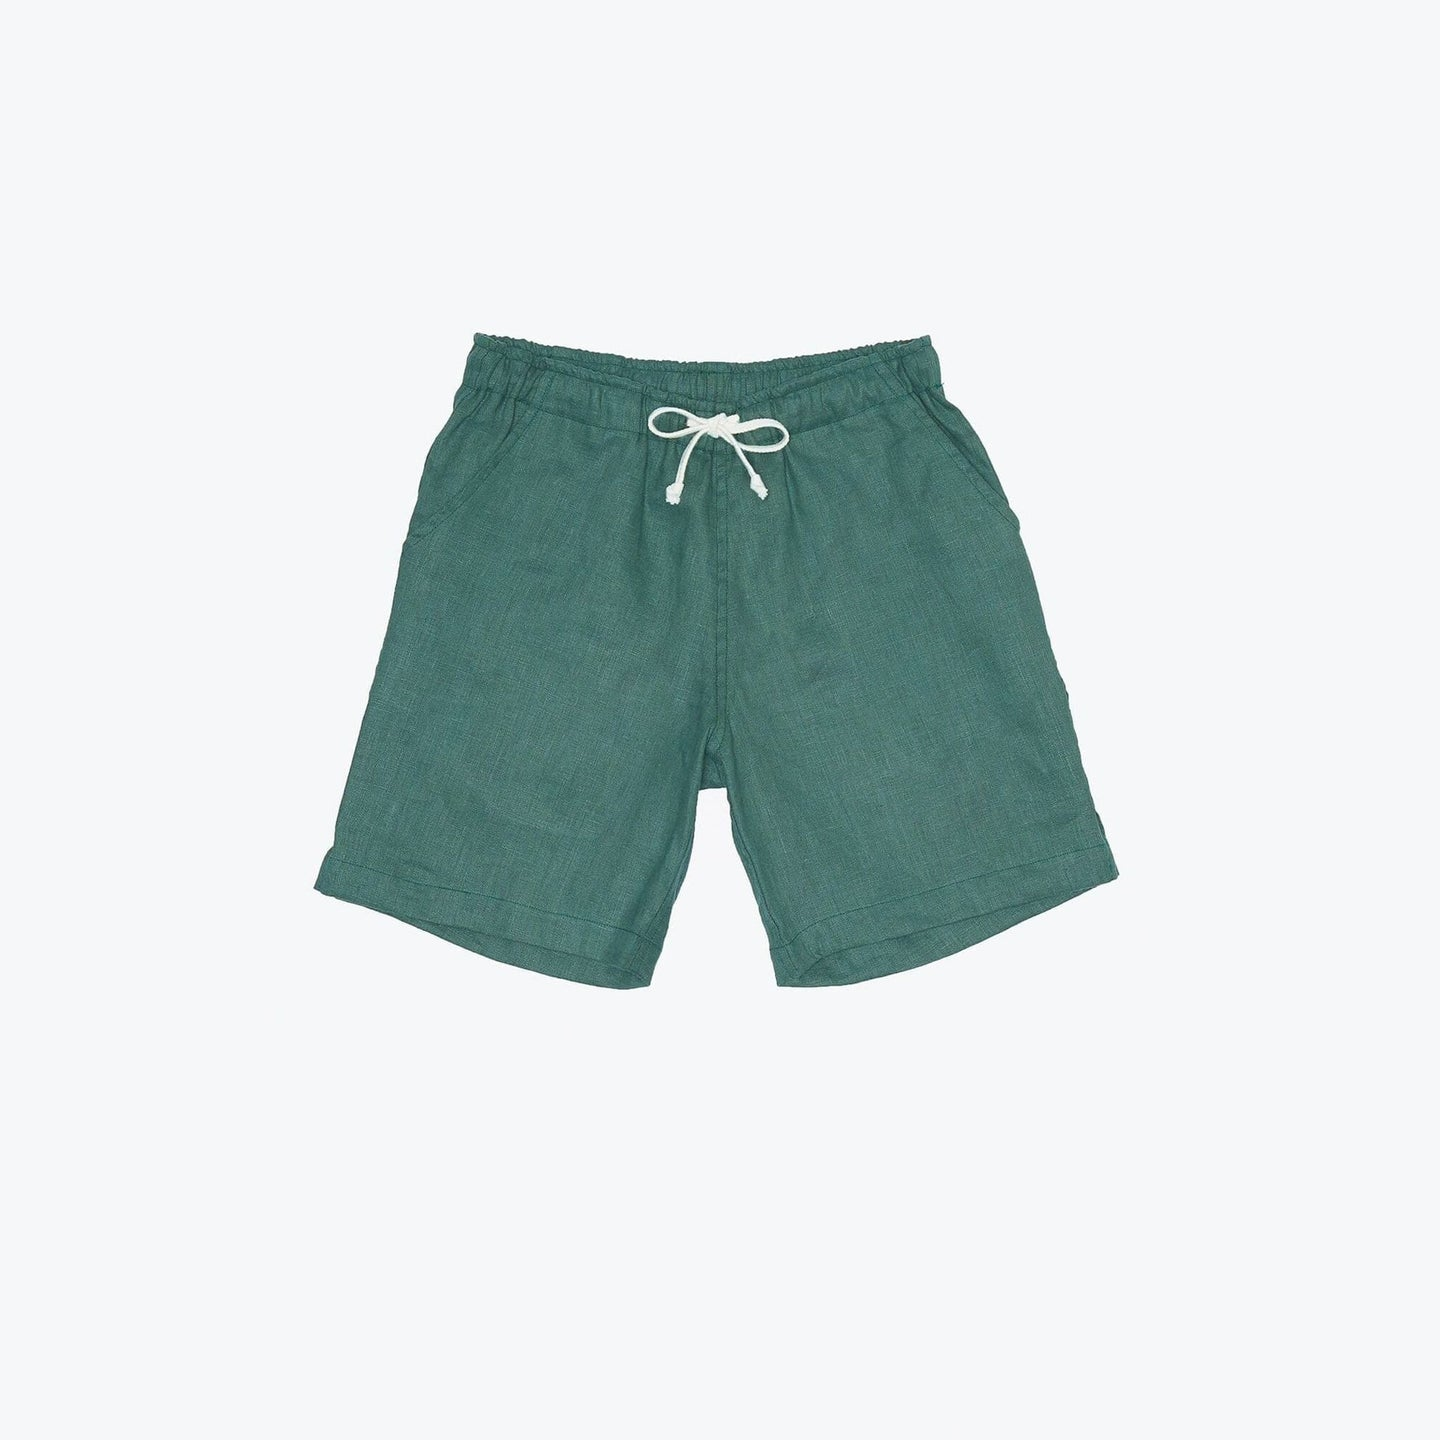 Bo Shorts / Neighborhood Goods